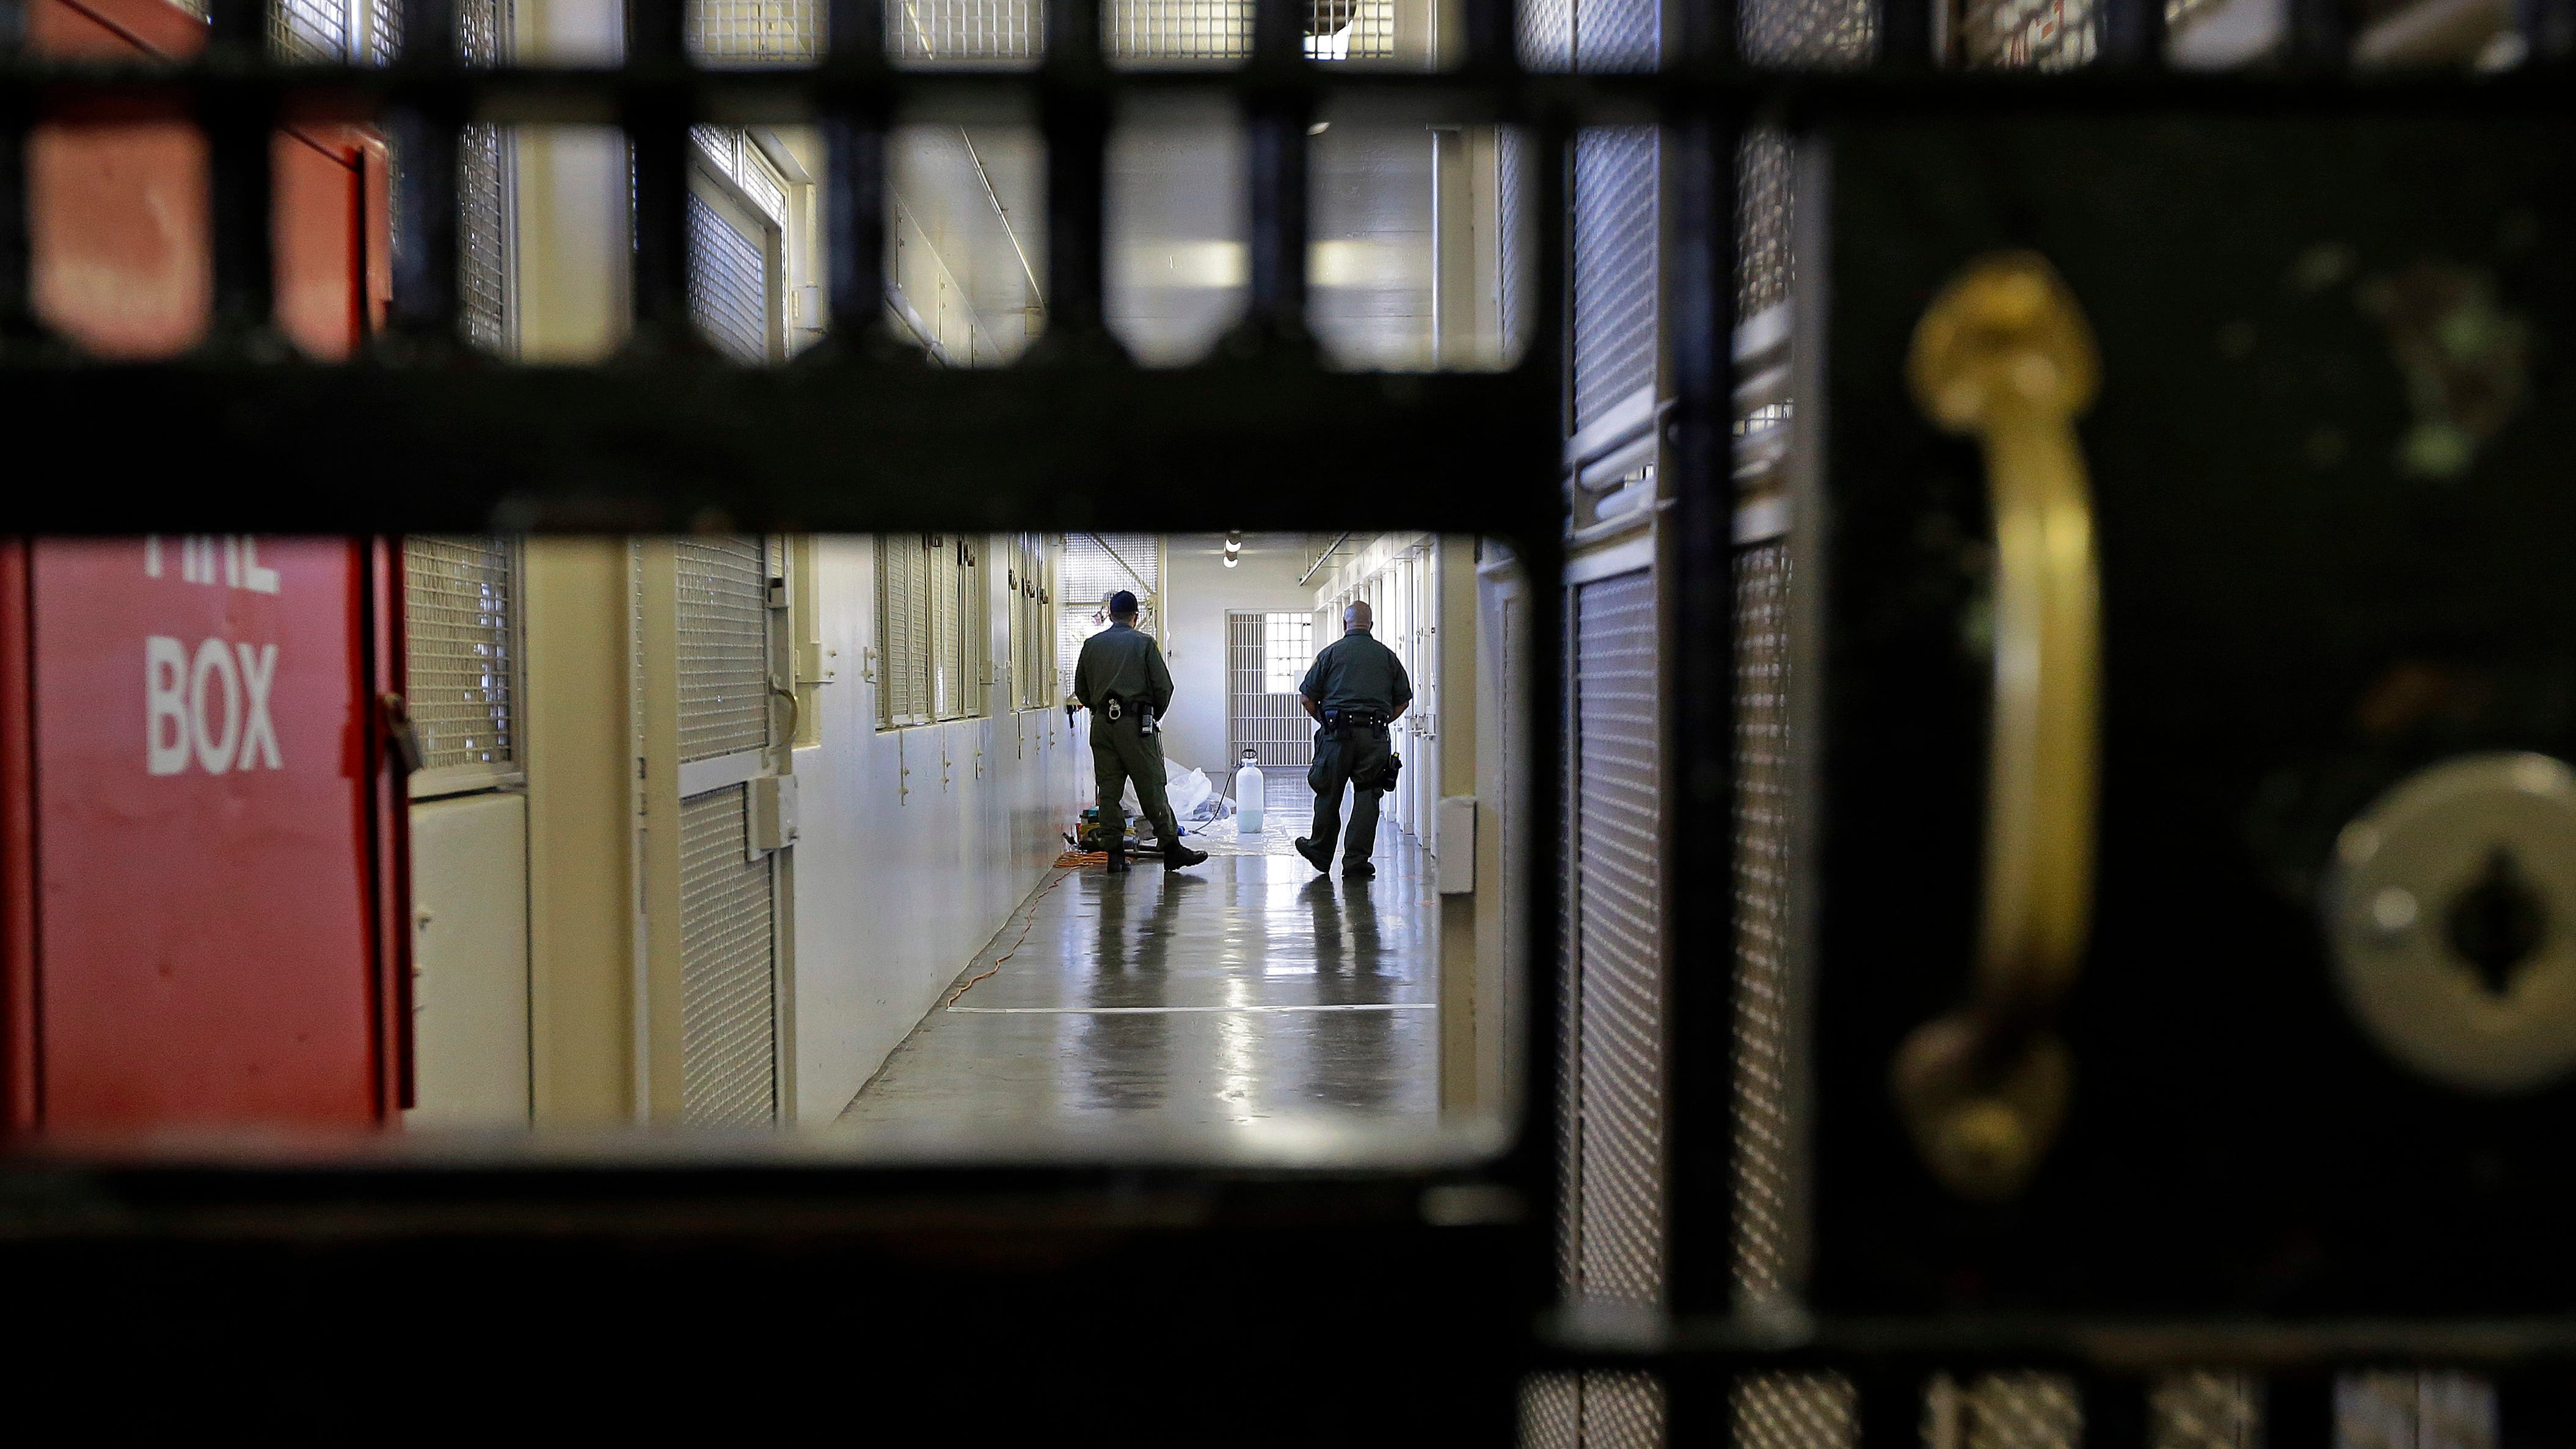 Guards walk a corridor at San Quentin State Prison in San Quentin, Calif.